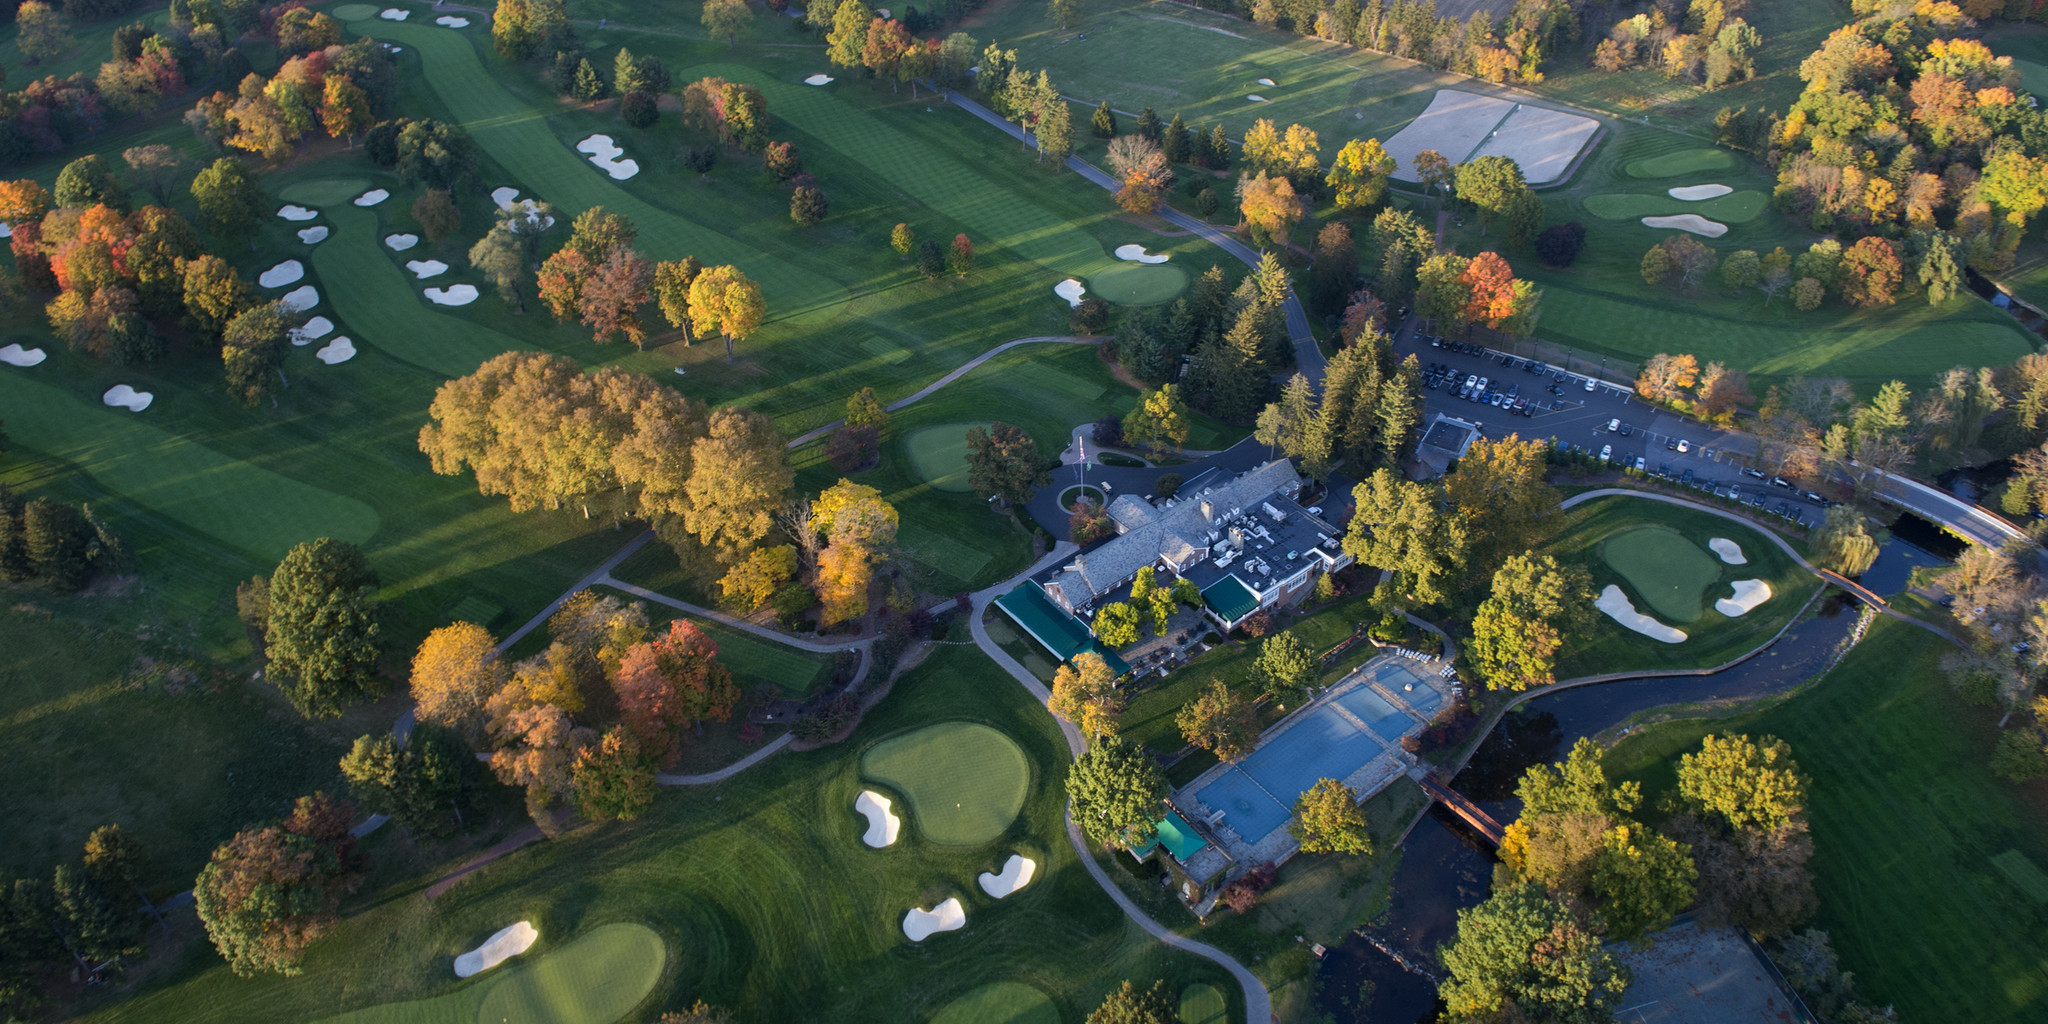 Pictures Aerial Views Of Lehigh Valley Golf Courses Capital Gazette